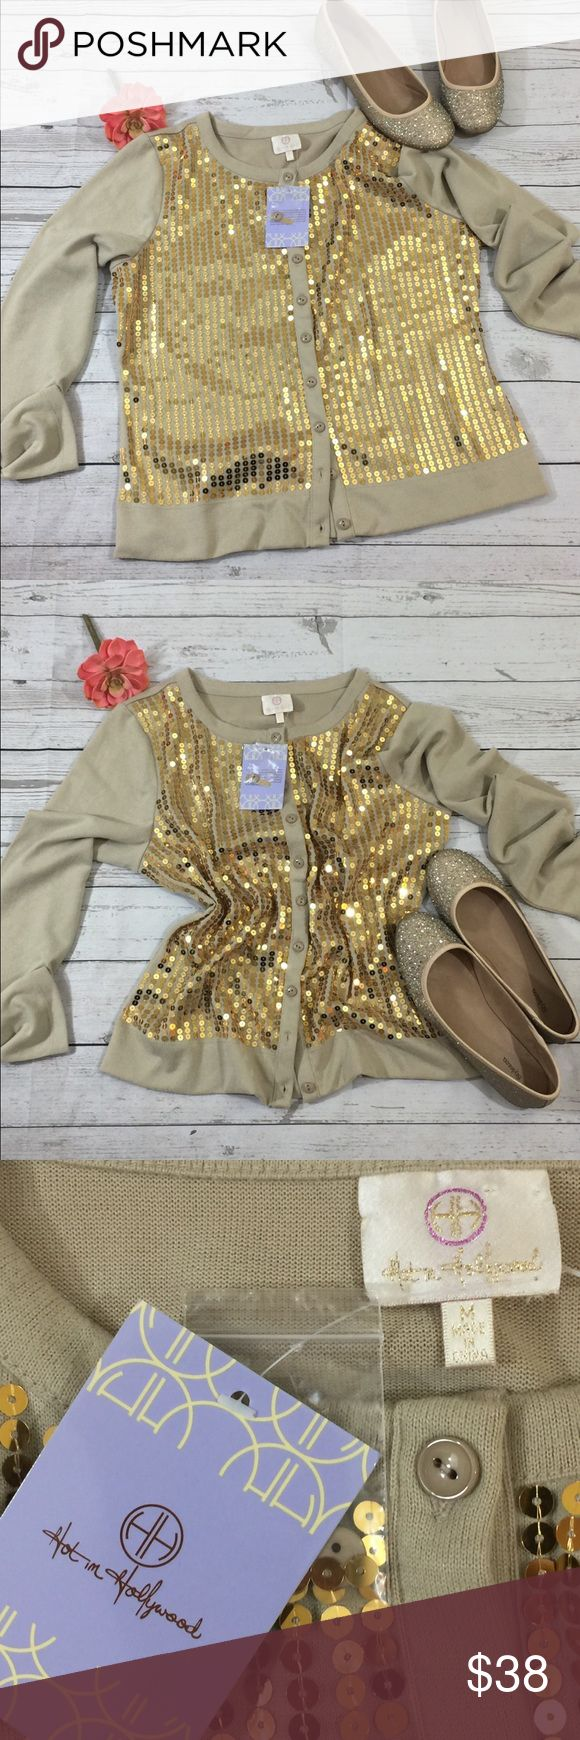 Hot In Hollywood sequin gold cardigan Gorgeous and flashy Hot In Hollywood sequin gold cardigan. New with Tags NWT Hot in Hollywood Sweaters Cardigans